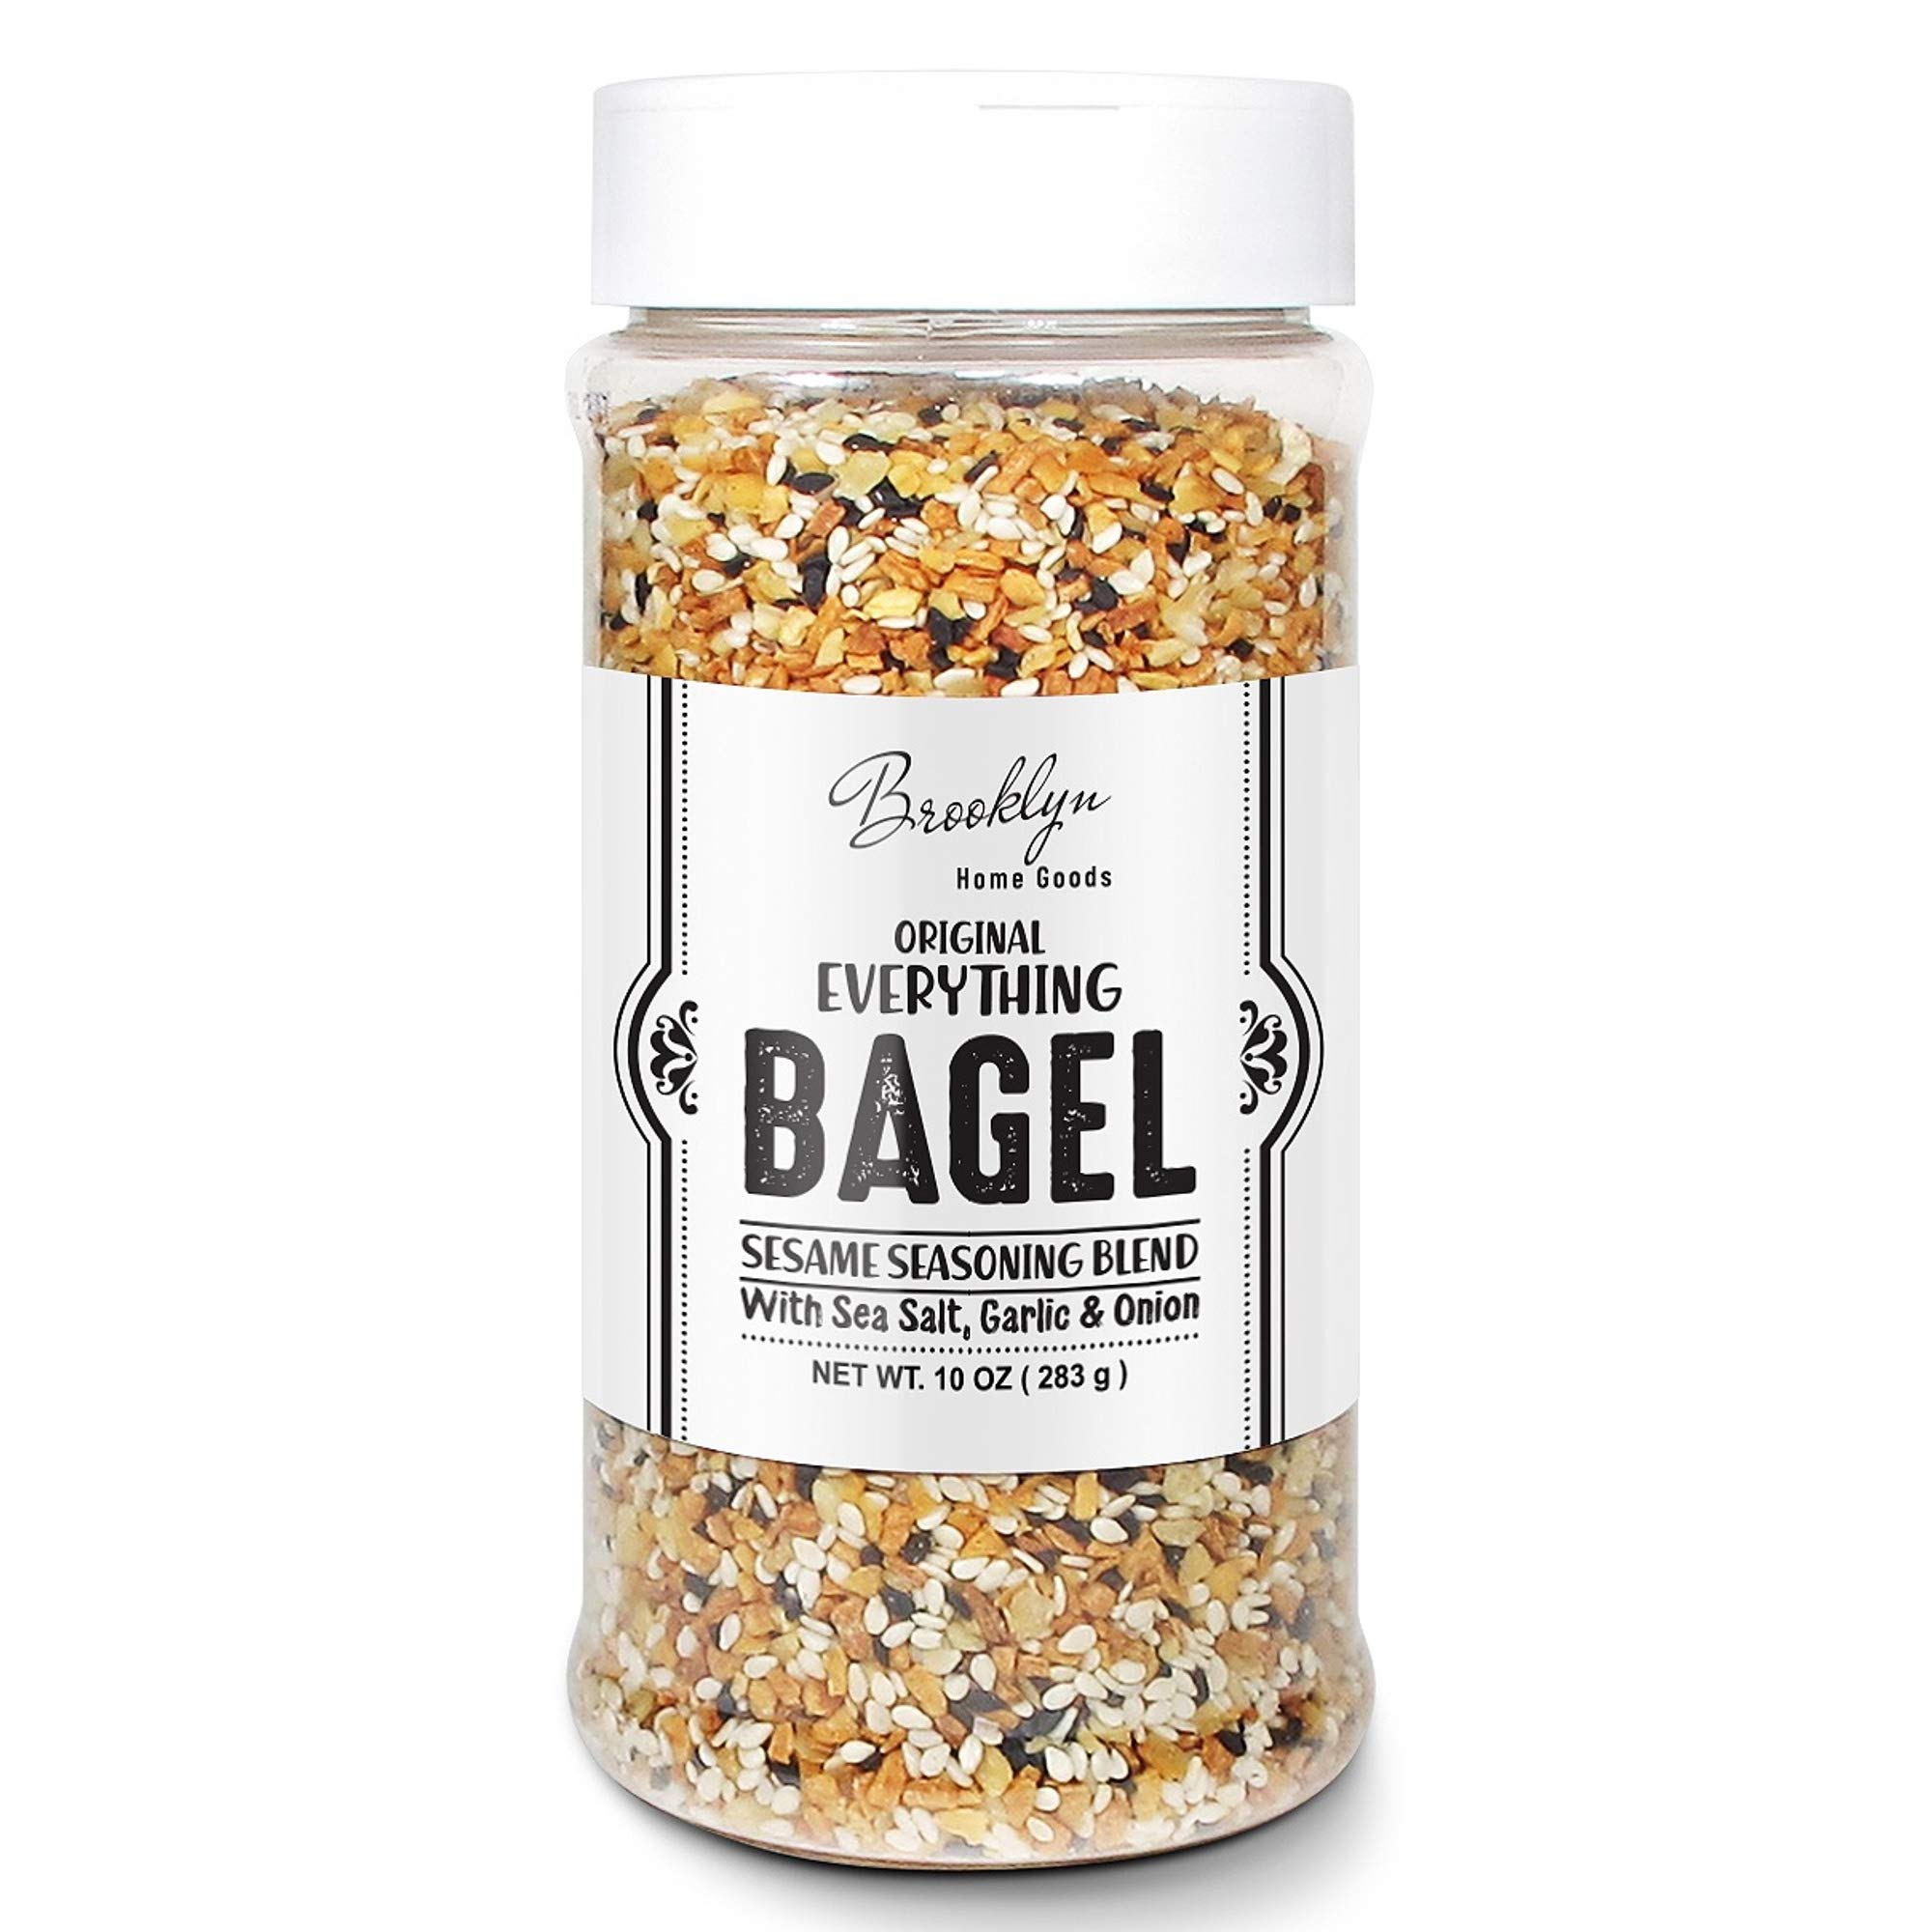 Everything Bagel Seasoning Blend Original XL 10 Ounce Jar - Bagel Allspice, Sesame Seasoning Spice Shaker, Delicious Blend of Sea Salt and Spices Garlic Powder Onion Flakes, Multi seasoning Shaker Bottle